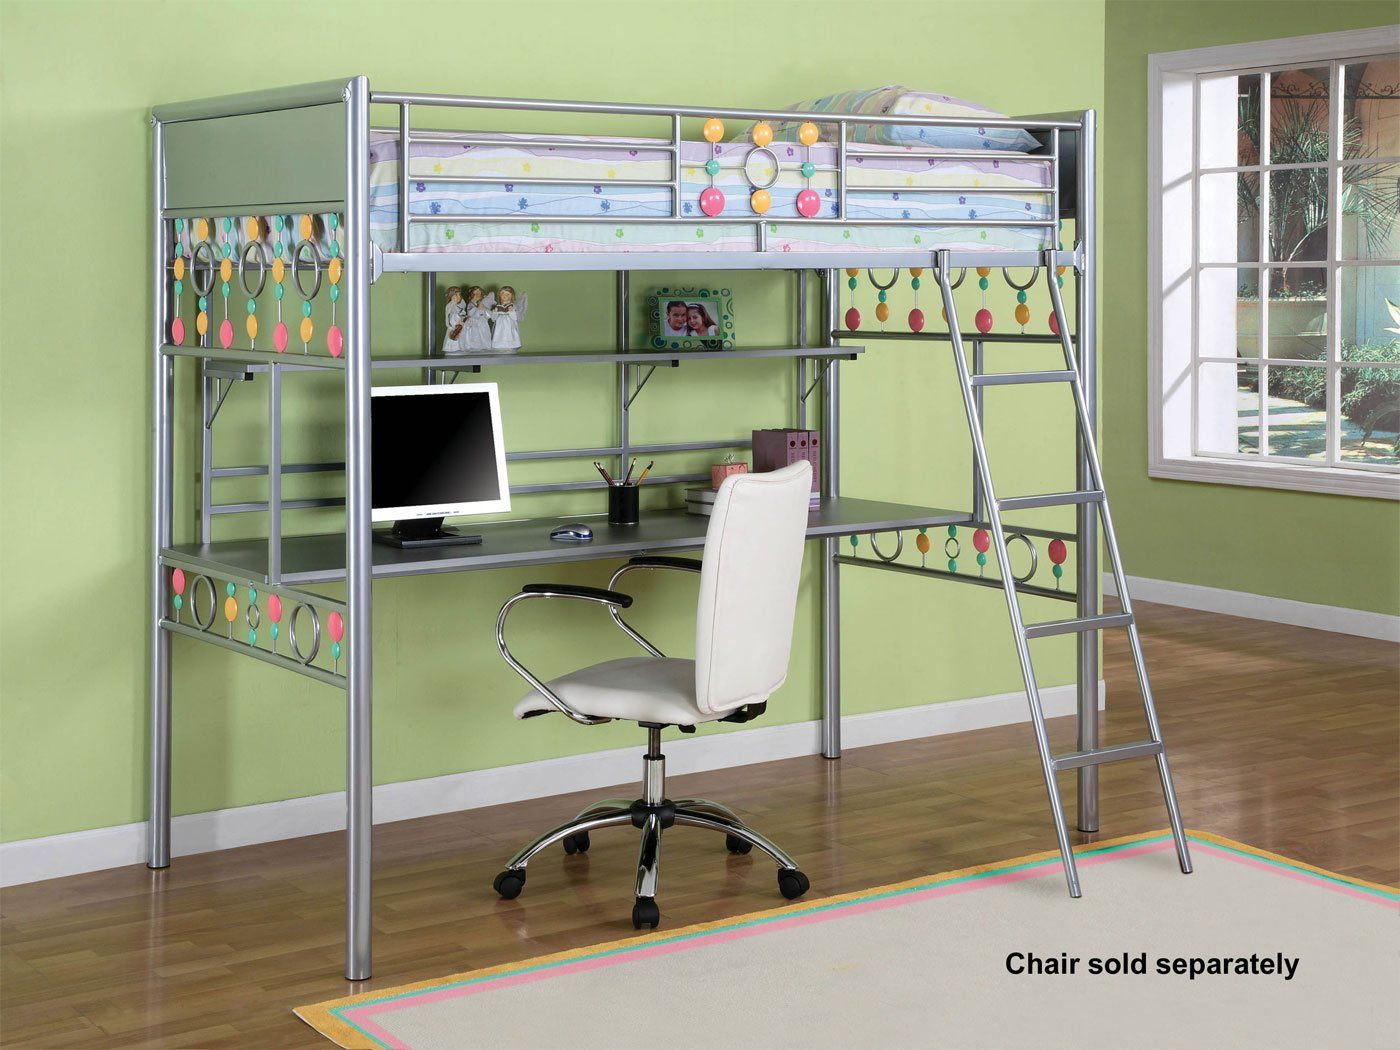 Ikea Bunk Beds With Desk Beautiful Living Room Furniture Set Check More At Http Www Gameintown Com Ikea B Bunk Bed With Desk Build A Loft Bed Loft Bed Desk